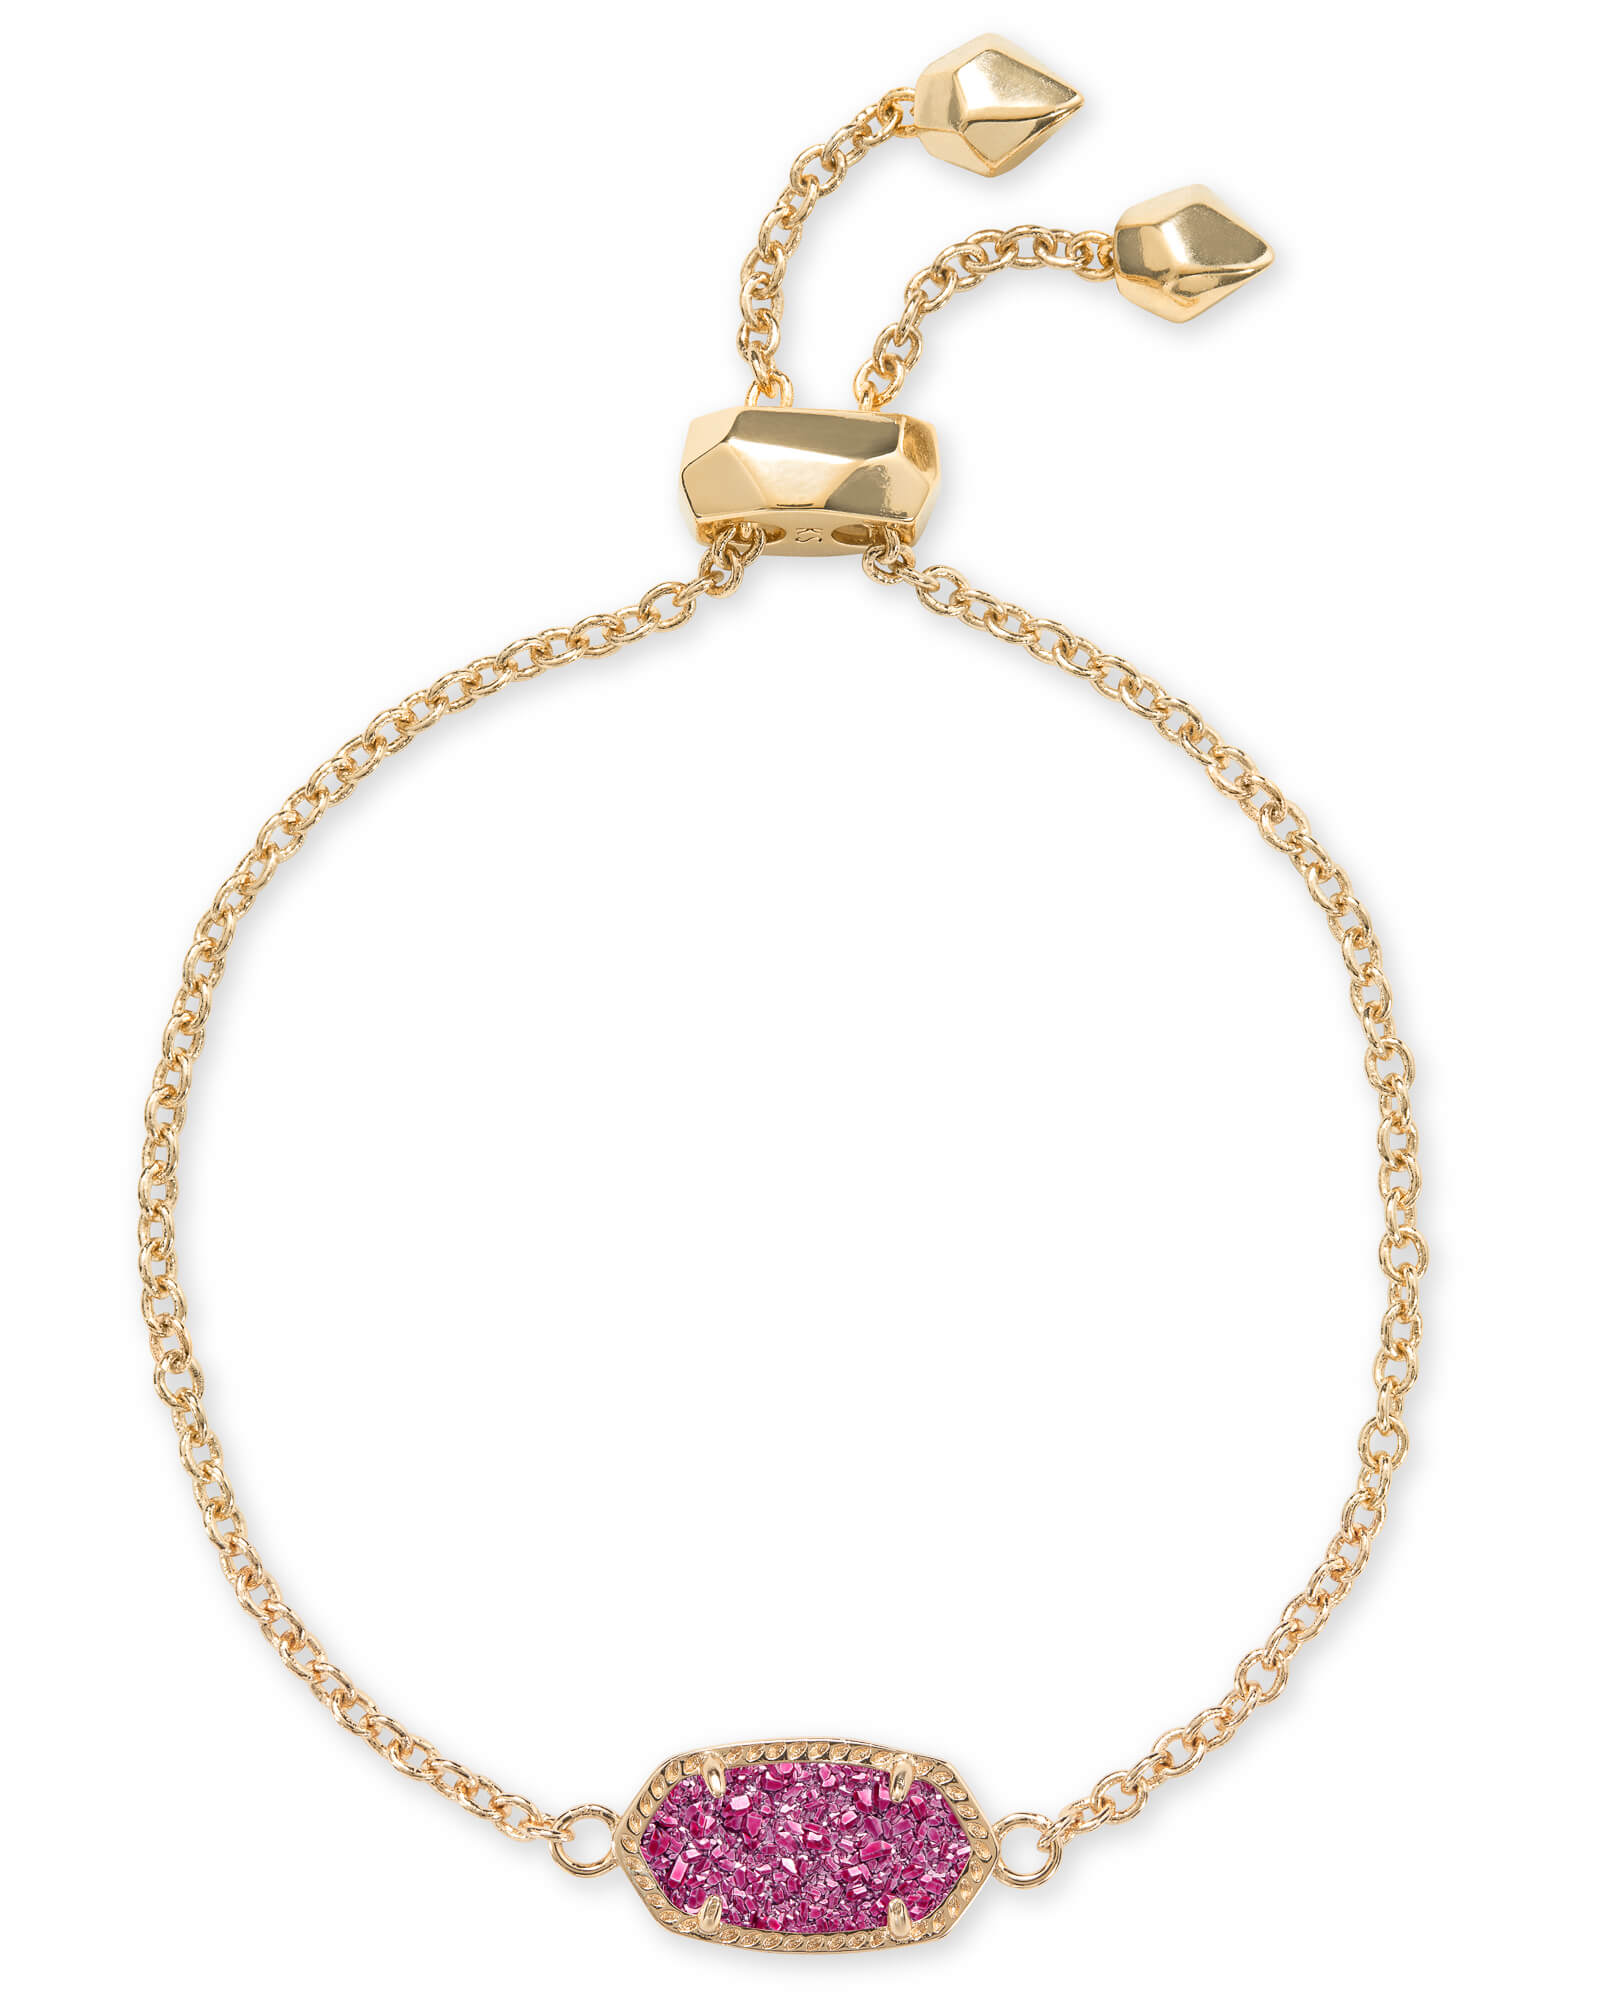 Elaina Gold Adjustable Chain Bracelet in Deep Fuchsia Drusy